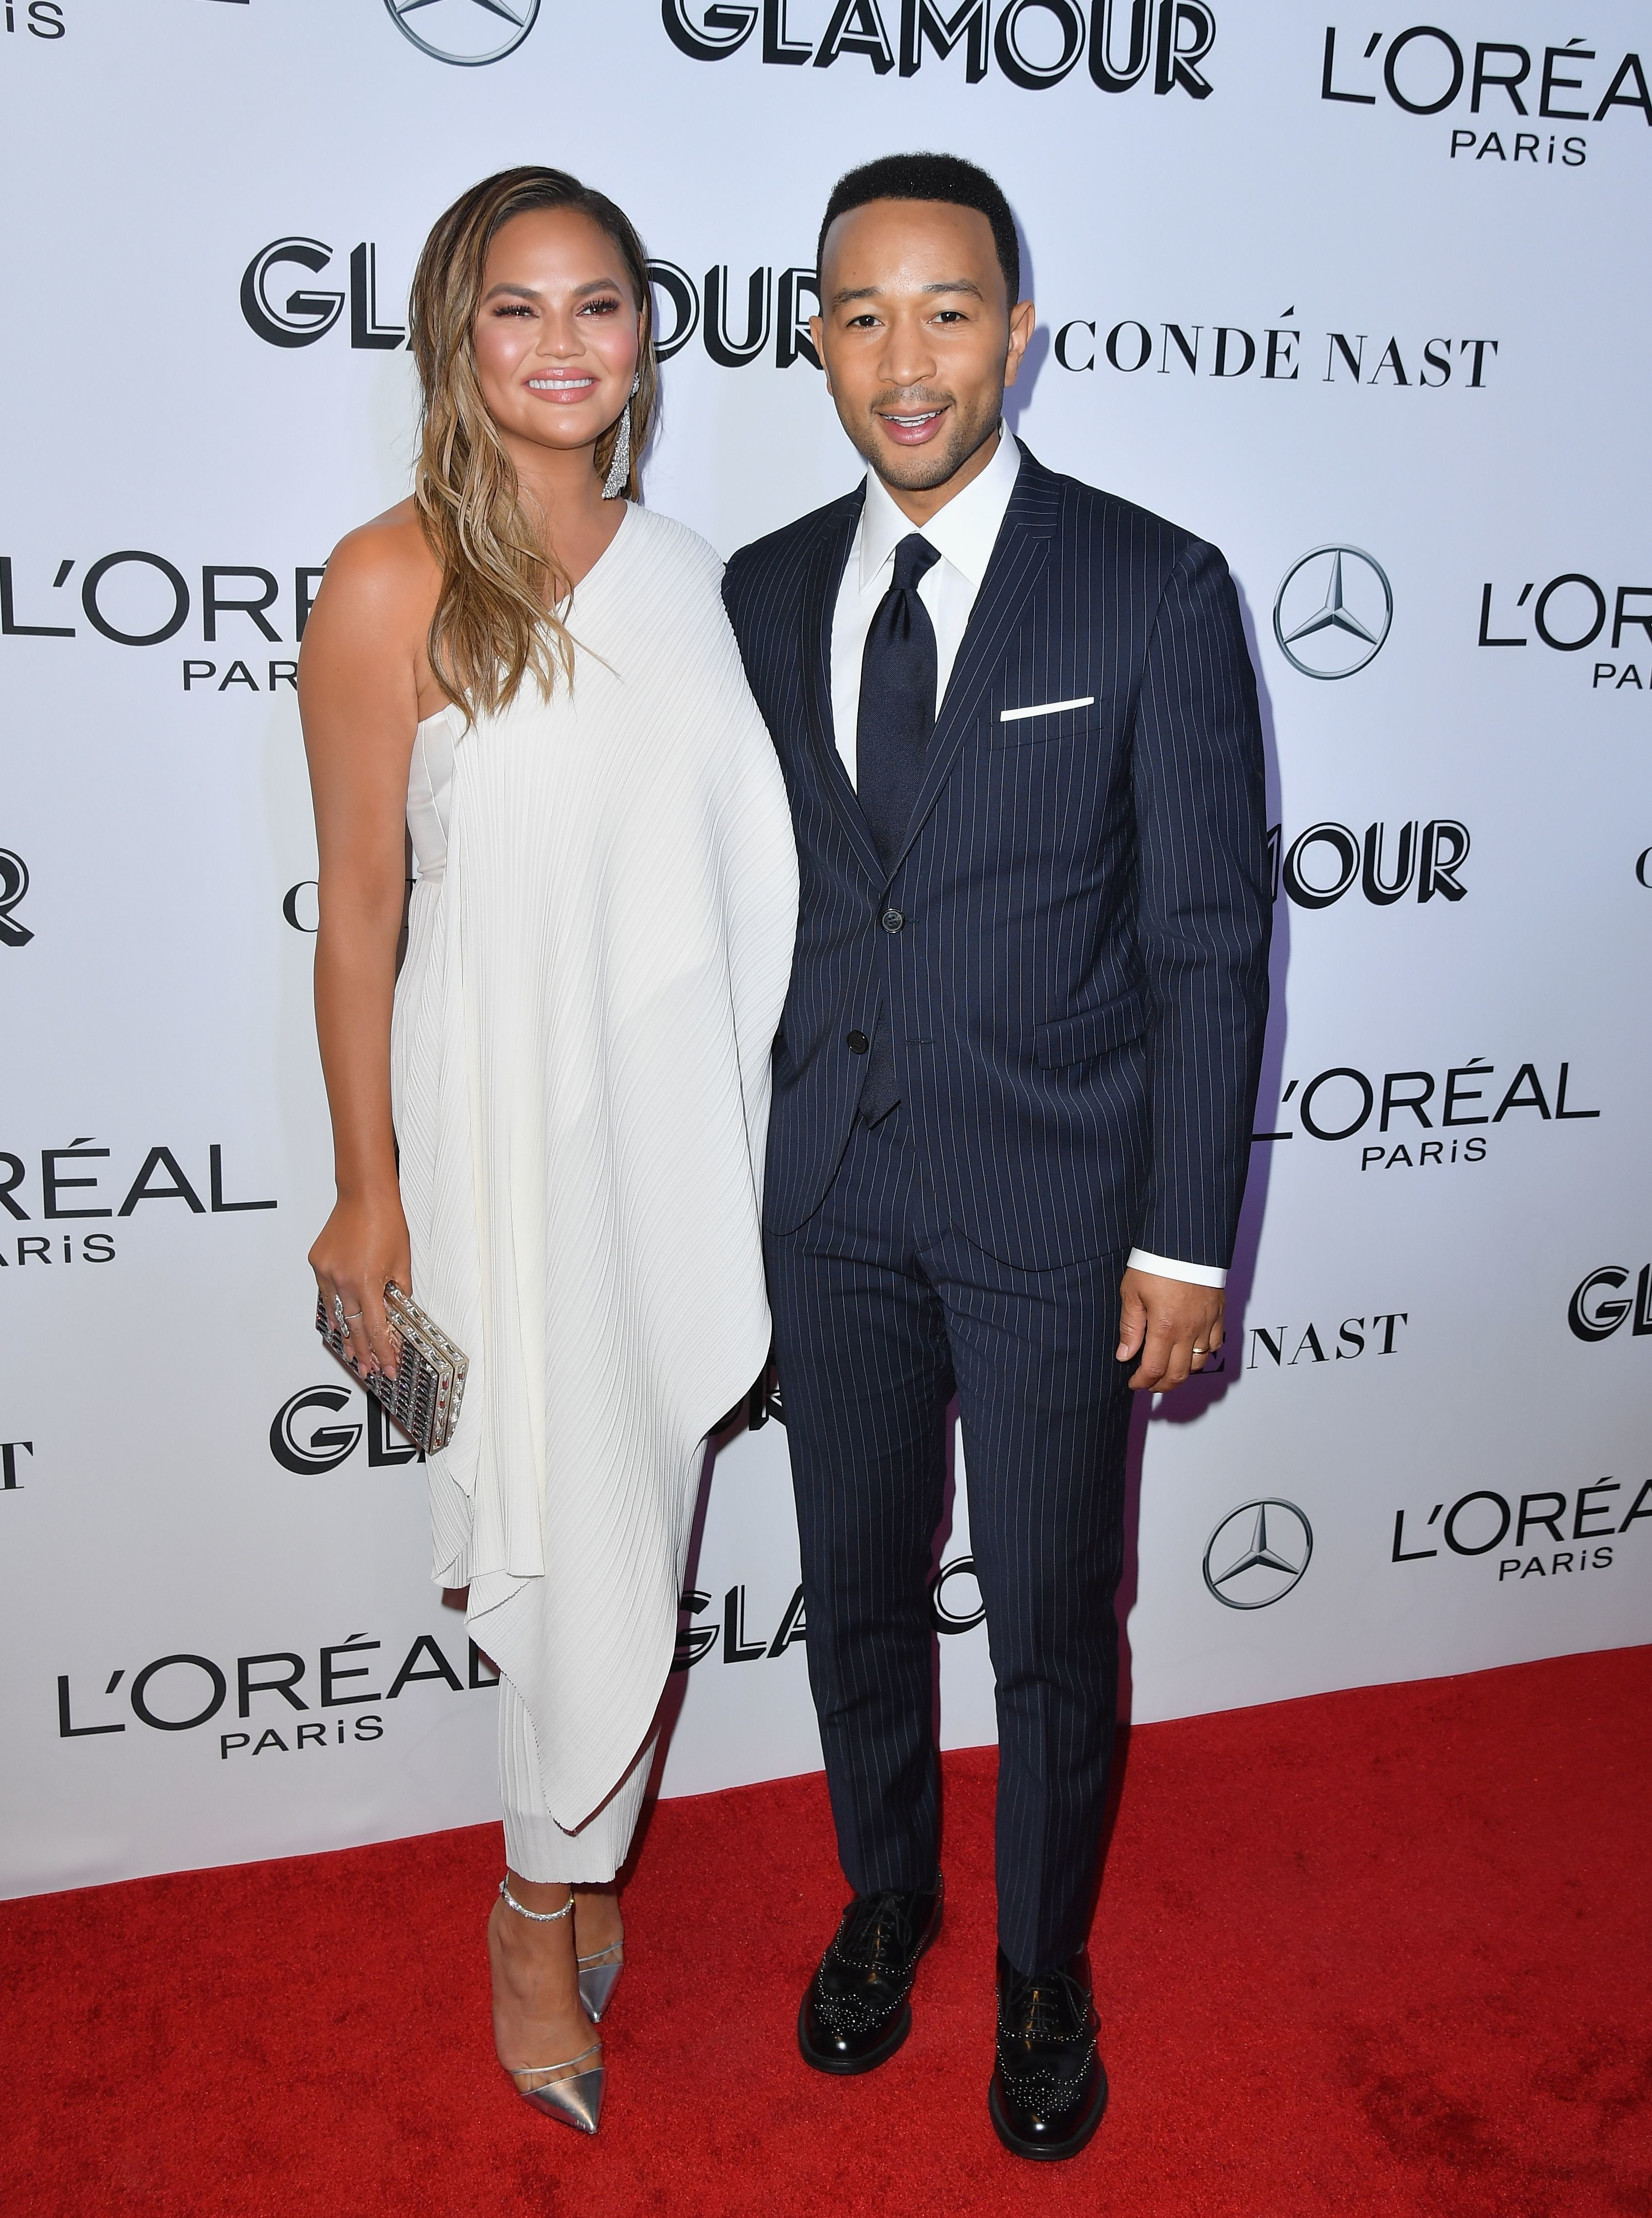 Model Chrissy Teigen and her husband singer-songwriter John Legend attend the 2018 Glamour Women Of The Year Awards: Women Rise on November 12, 2018 in New York City. (Photo by Angela Weiss / AFP)        (Photo credit should read ANGELA WEISS/AFP/Getty Images)